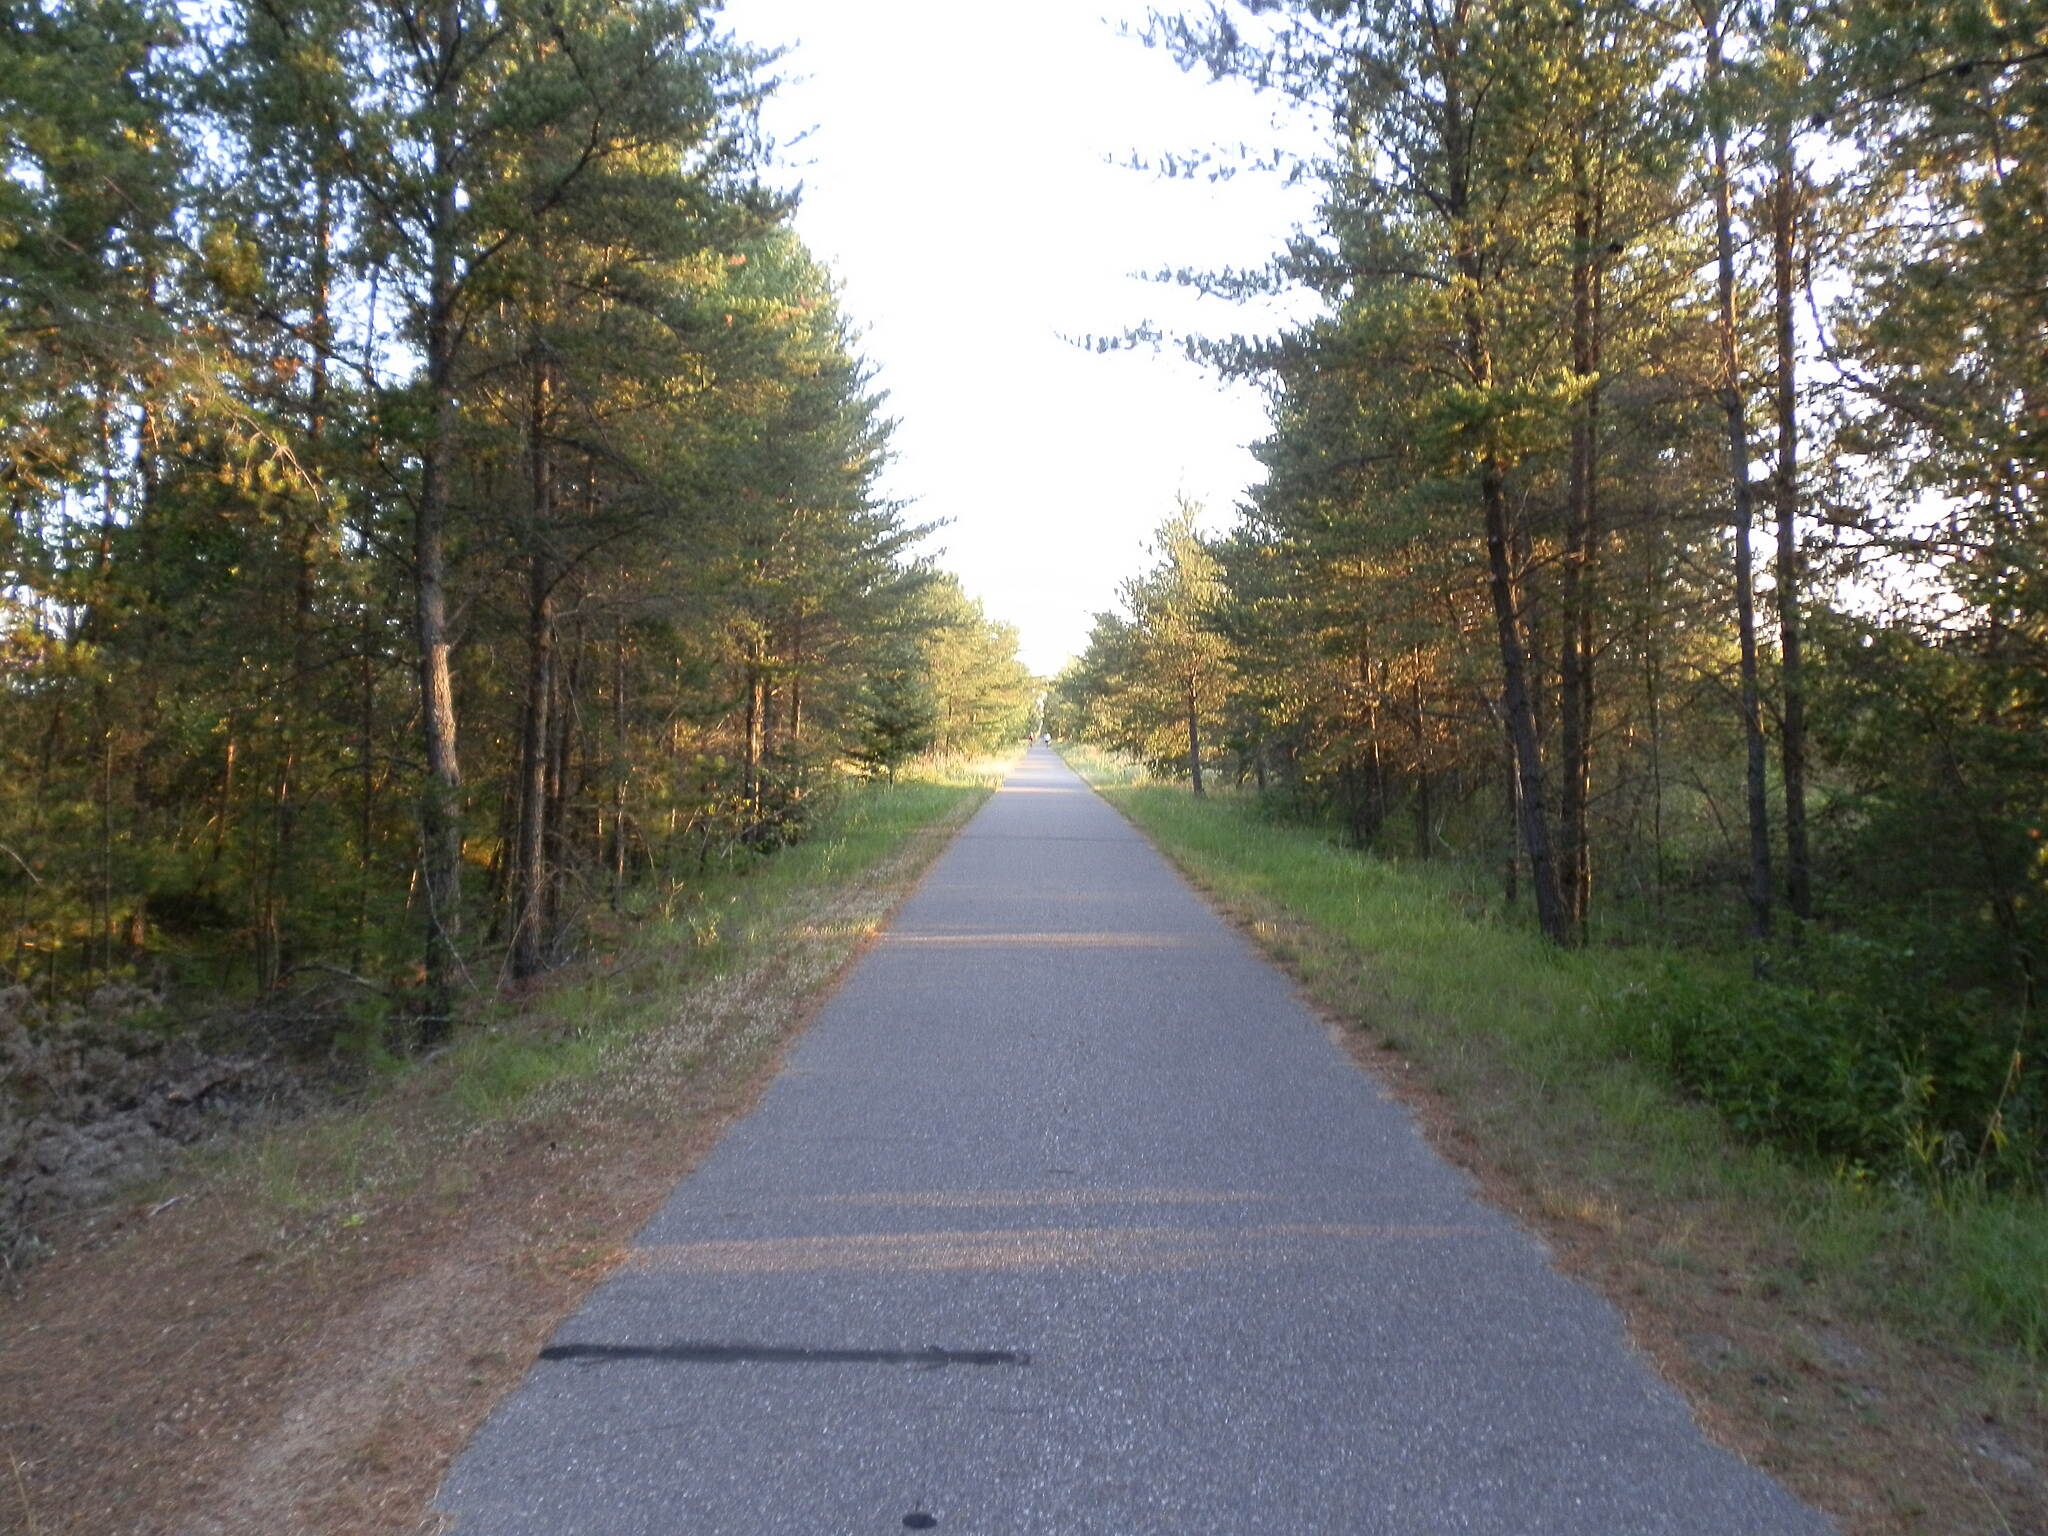 Paul Bunyan State Trail Trail south of Pequot Lakes August 2015 photo of trail in area where new MN 371 bypass will cross trail during 2016 and 17 construction.